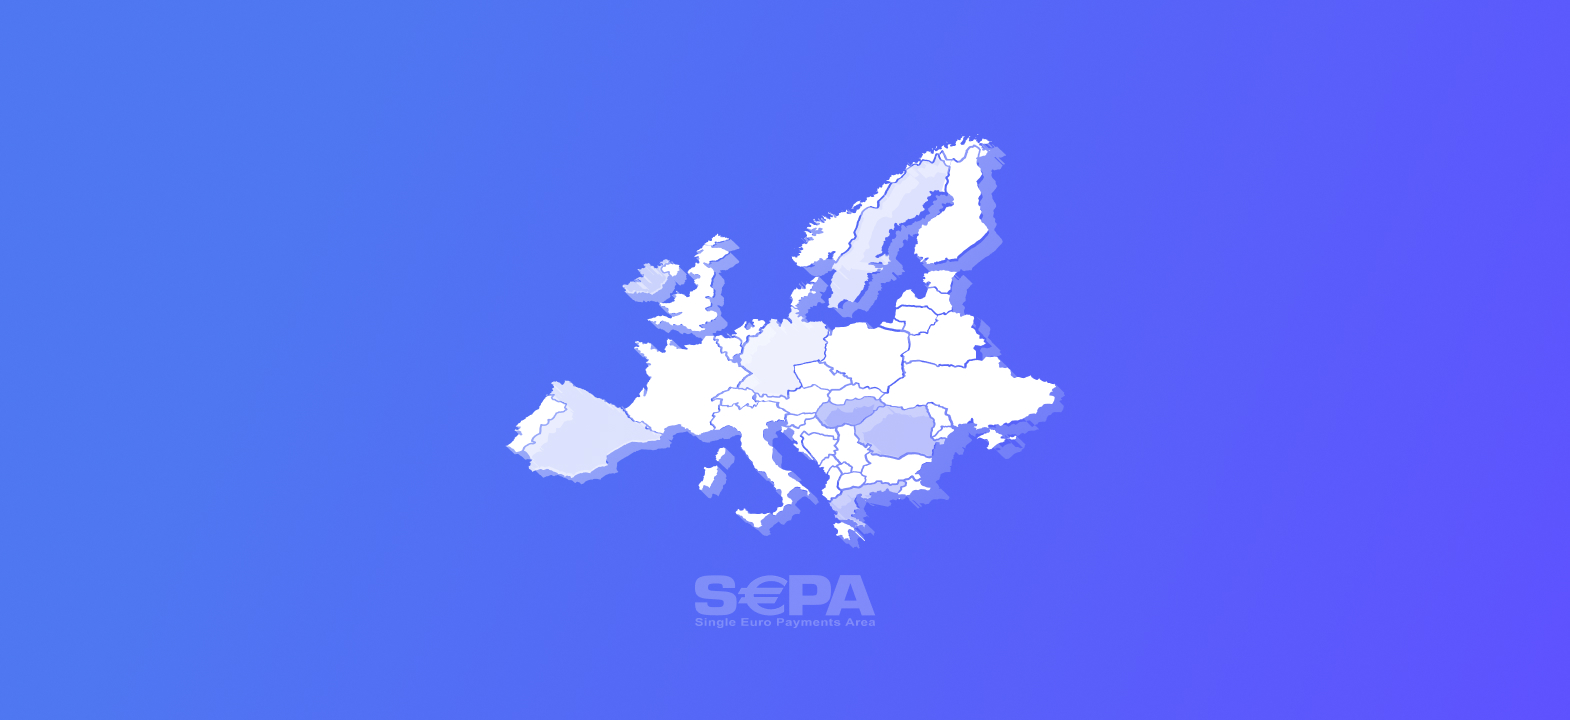 What Is SEPA In Banking